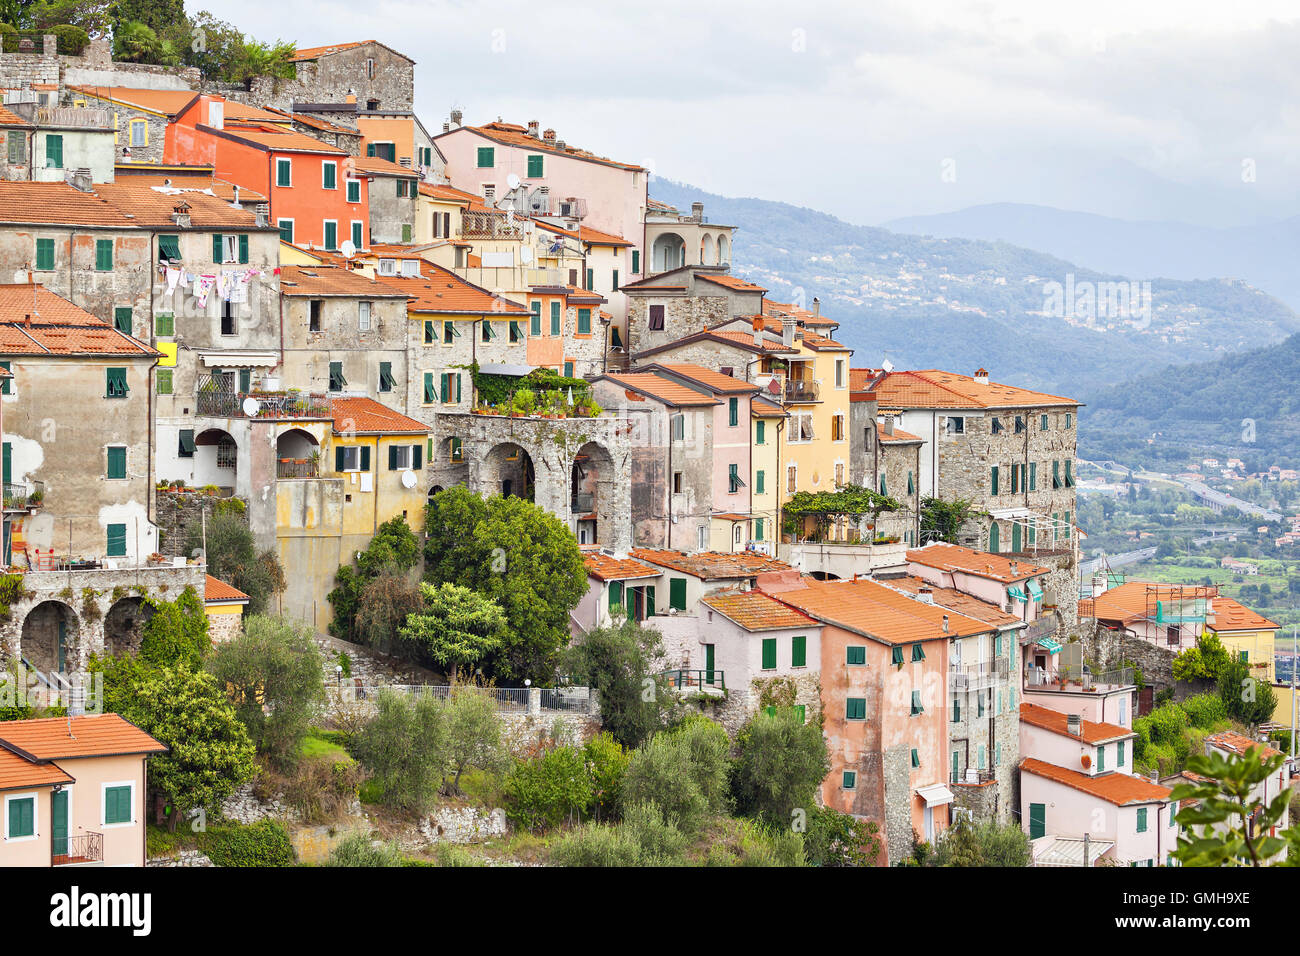 Small houses chaotically standing on the hill in Vezzano Ligure, Italy Stock Photo